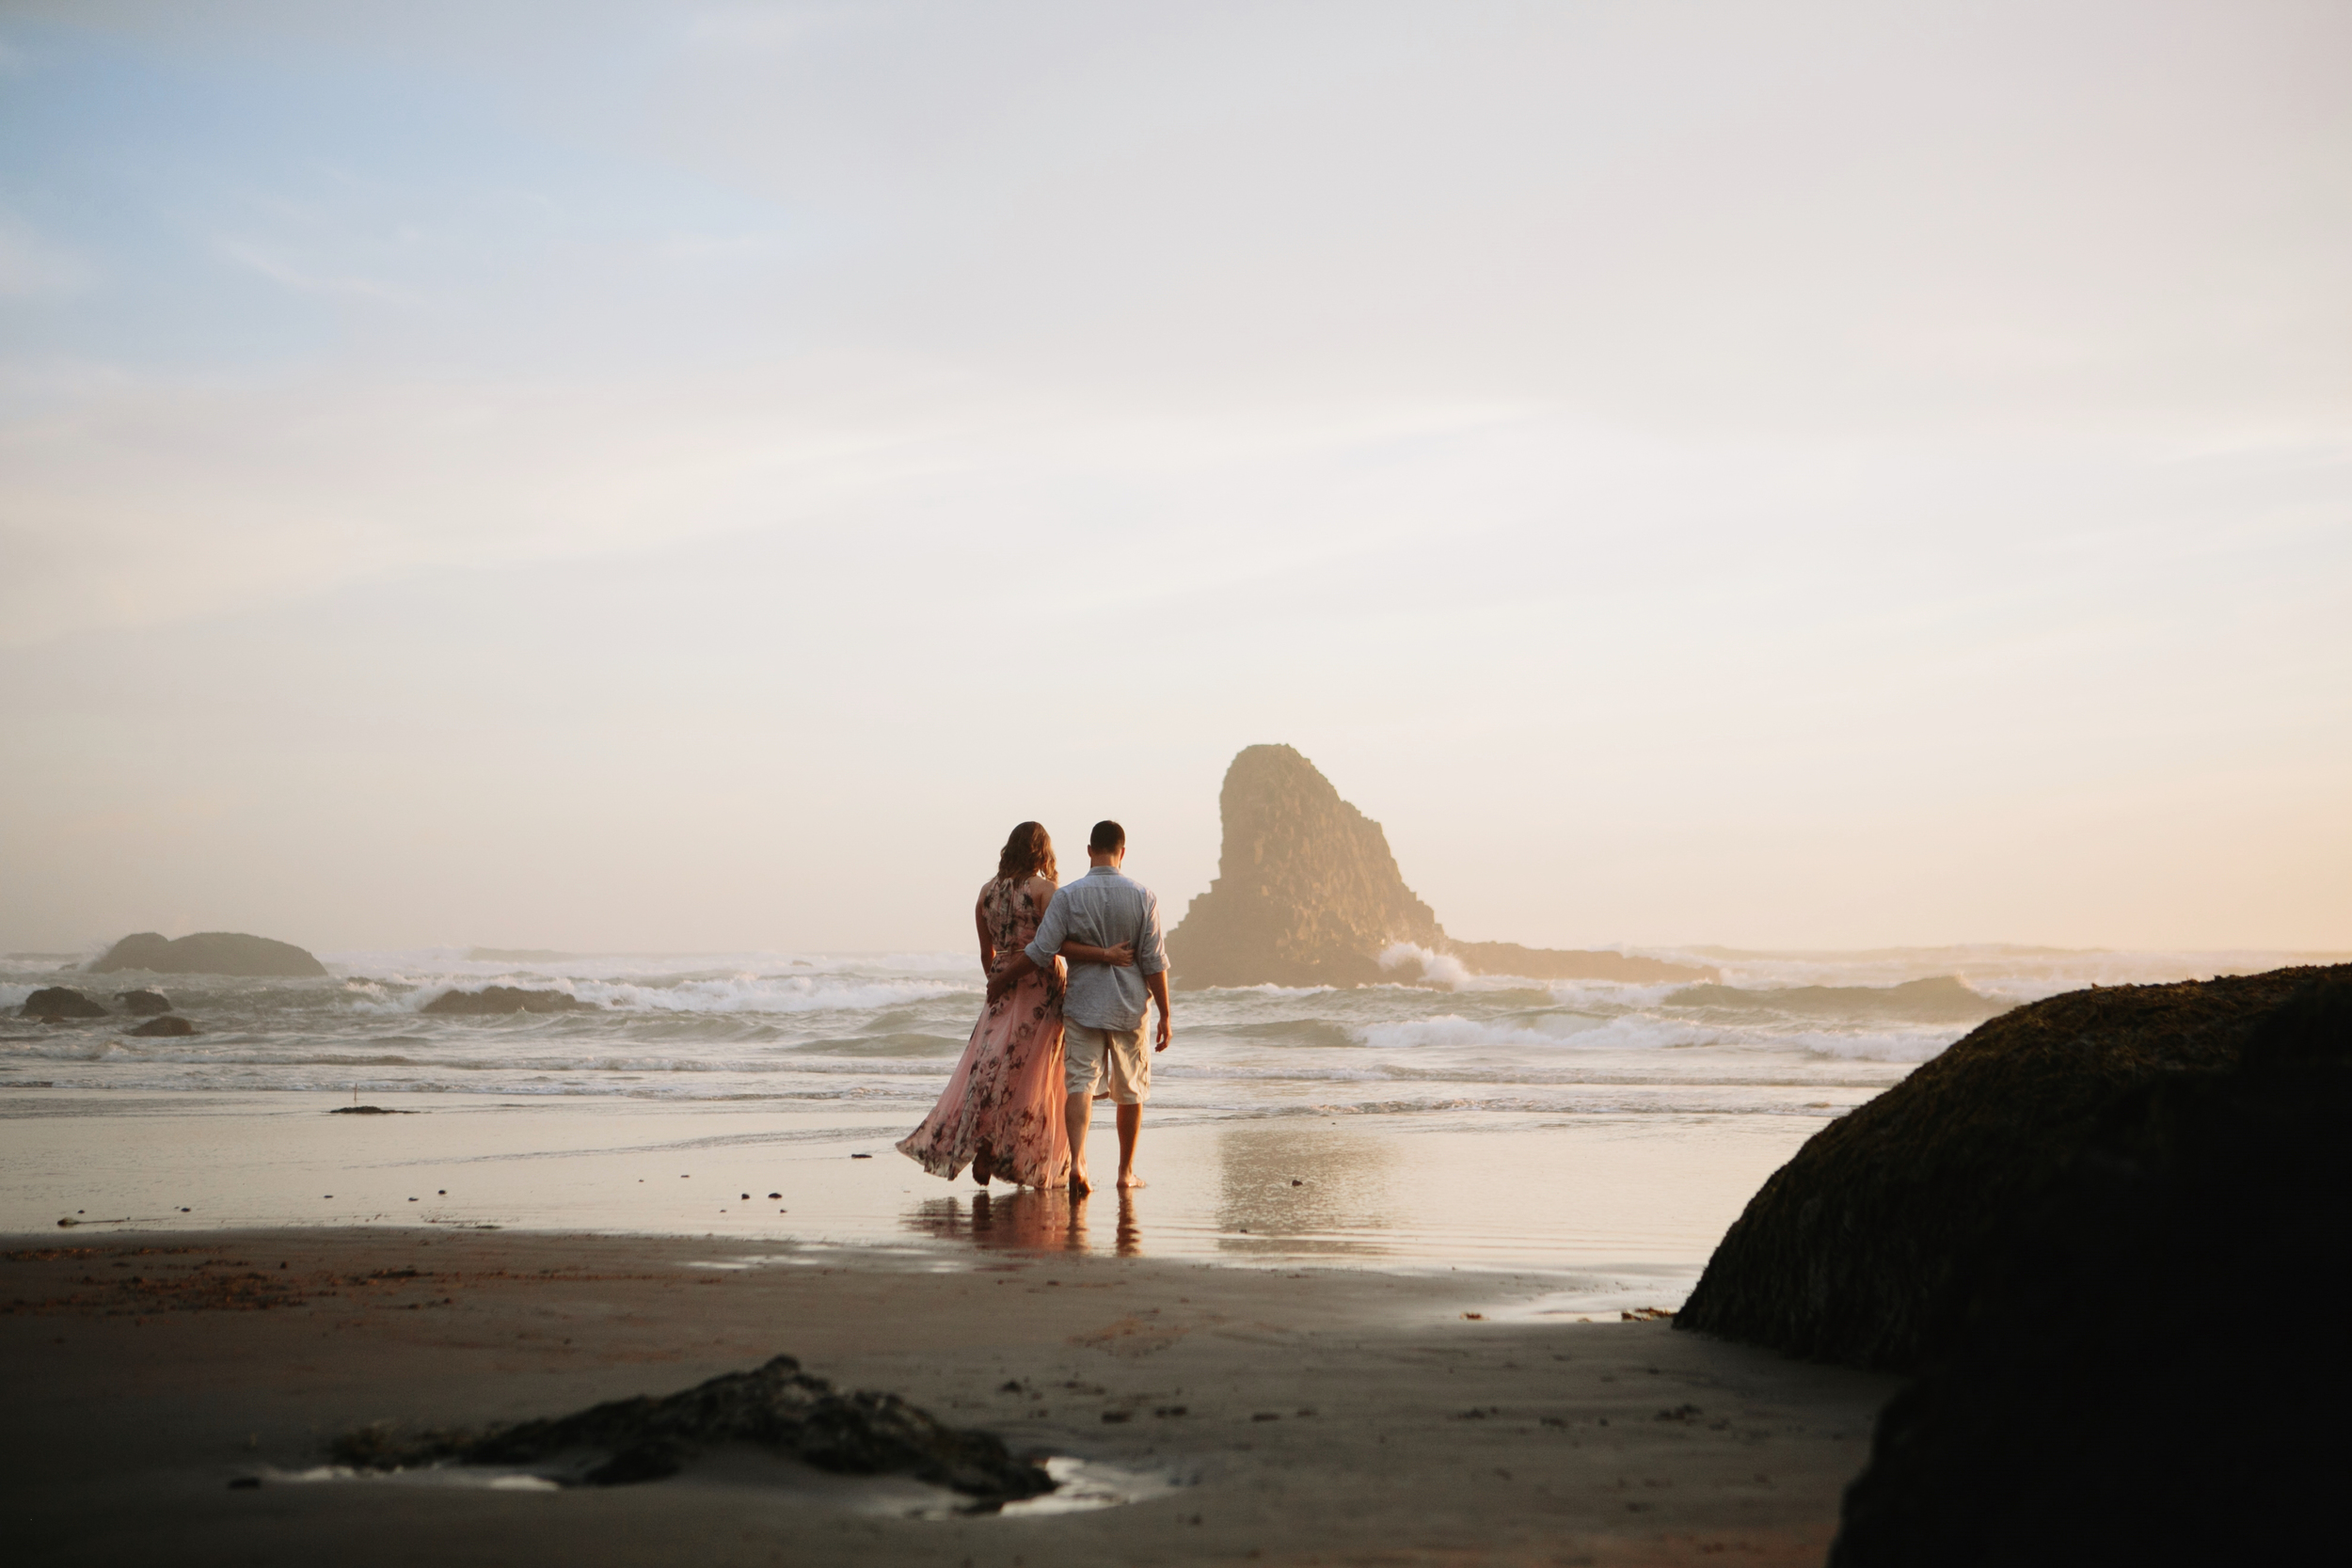 Oregon Coast Cannon Beach Engagement Session- Grace and Jaden photography (21).jpg